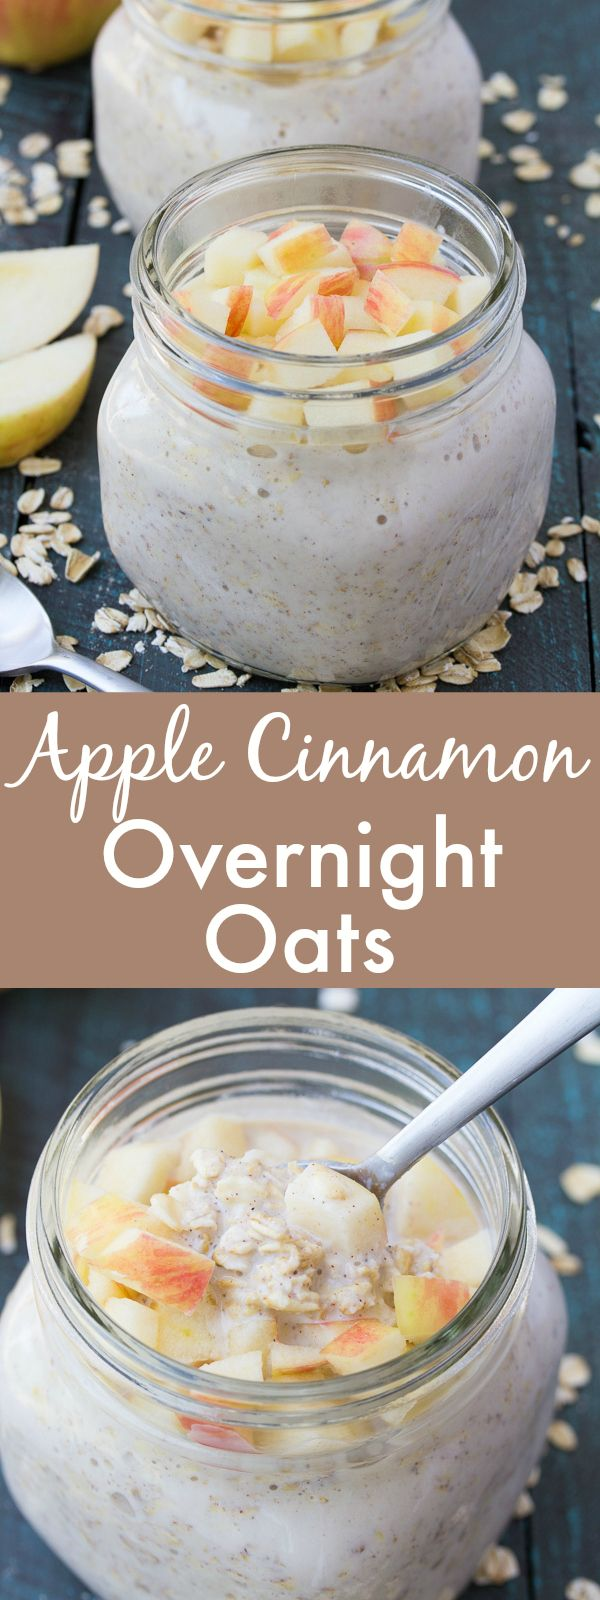 An easy recipe for Apple Cinnamon Overnight Oats. A healthy, make ahead breakfast for busy mornings! | www.kristineskitchenblog.com @bobsredmill #sponsored: